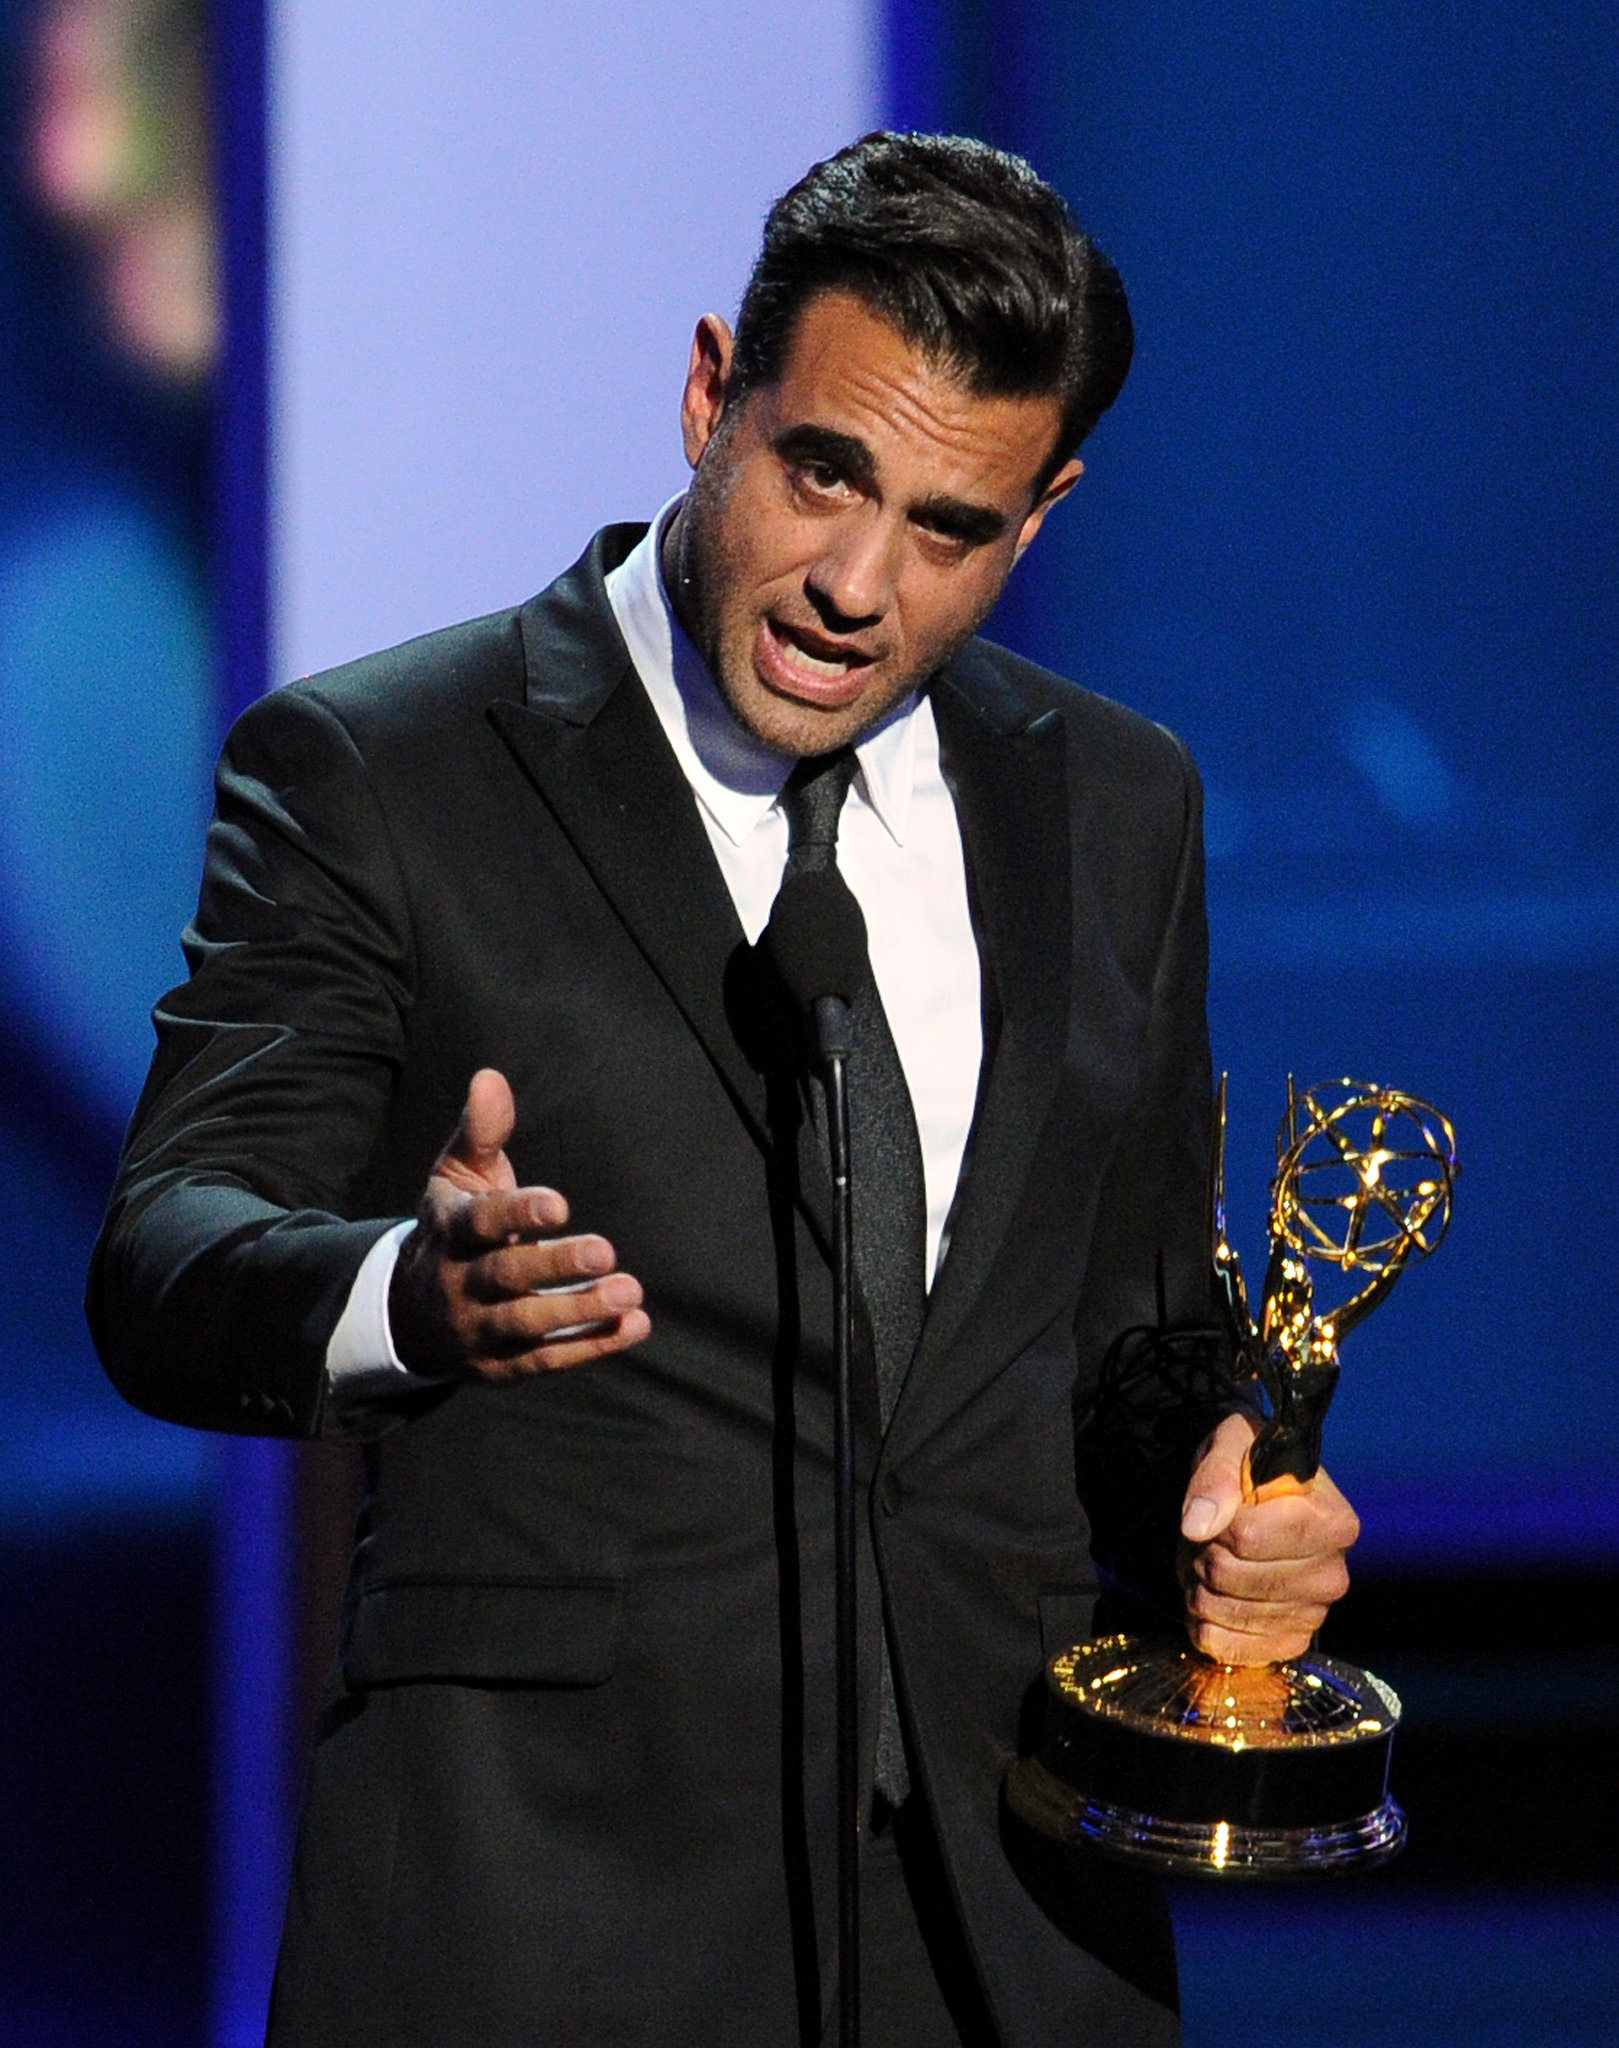 Boardwalk Empire's Bobby Cannavale won the award for best supp